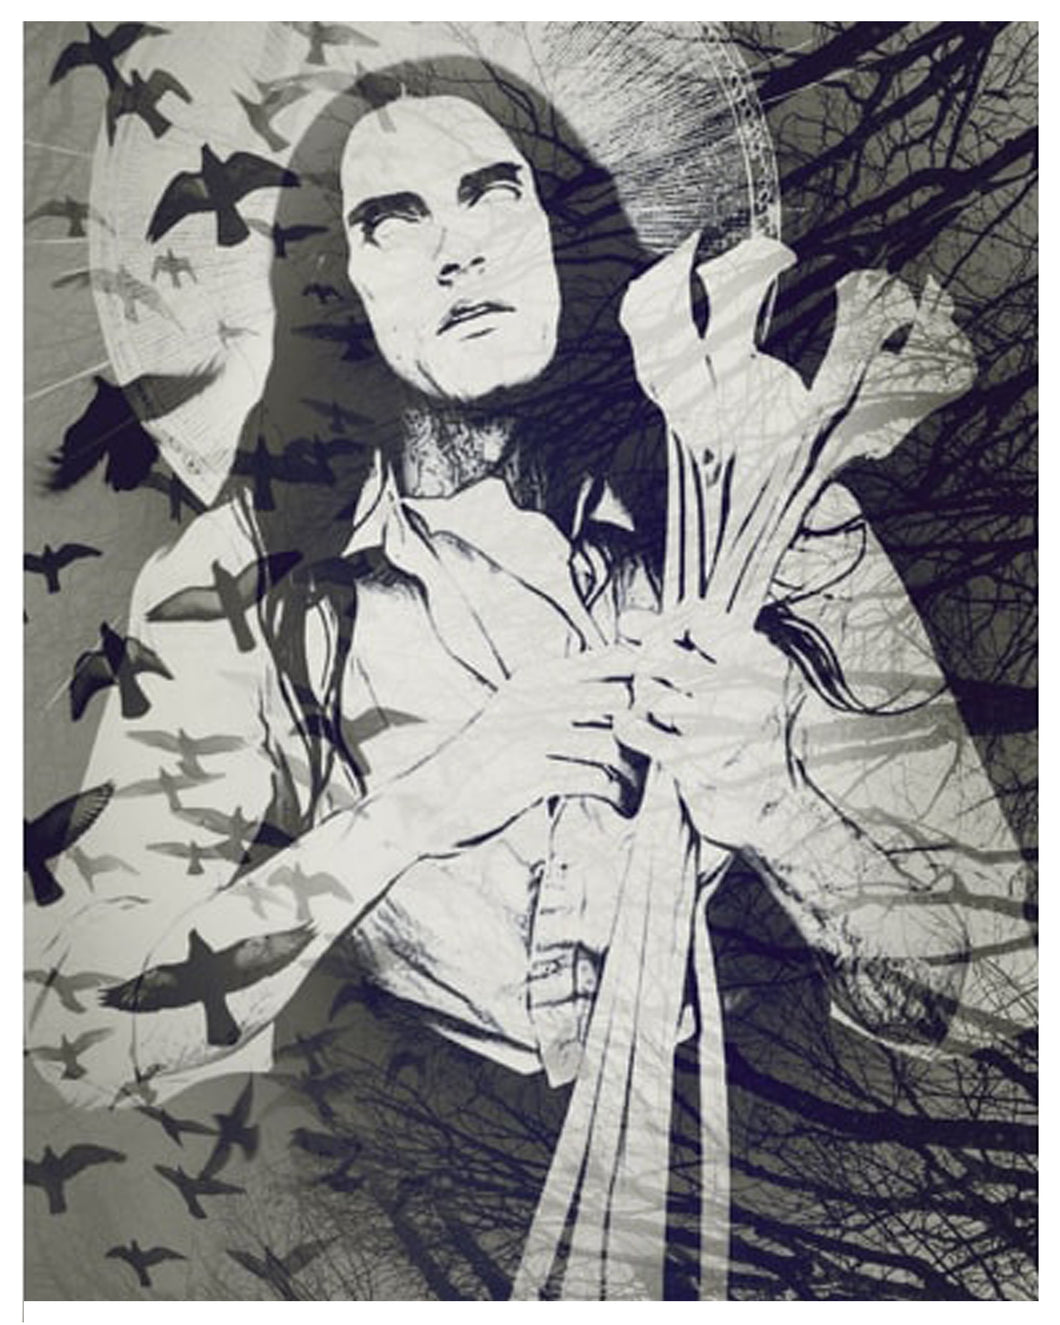 St. Peter Steele Goth Candle, 8